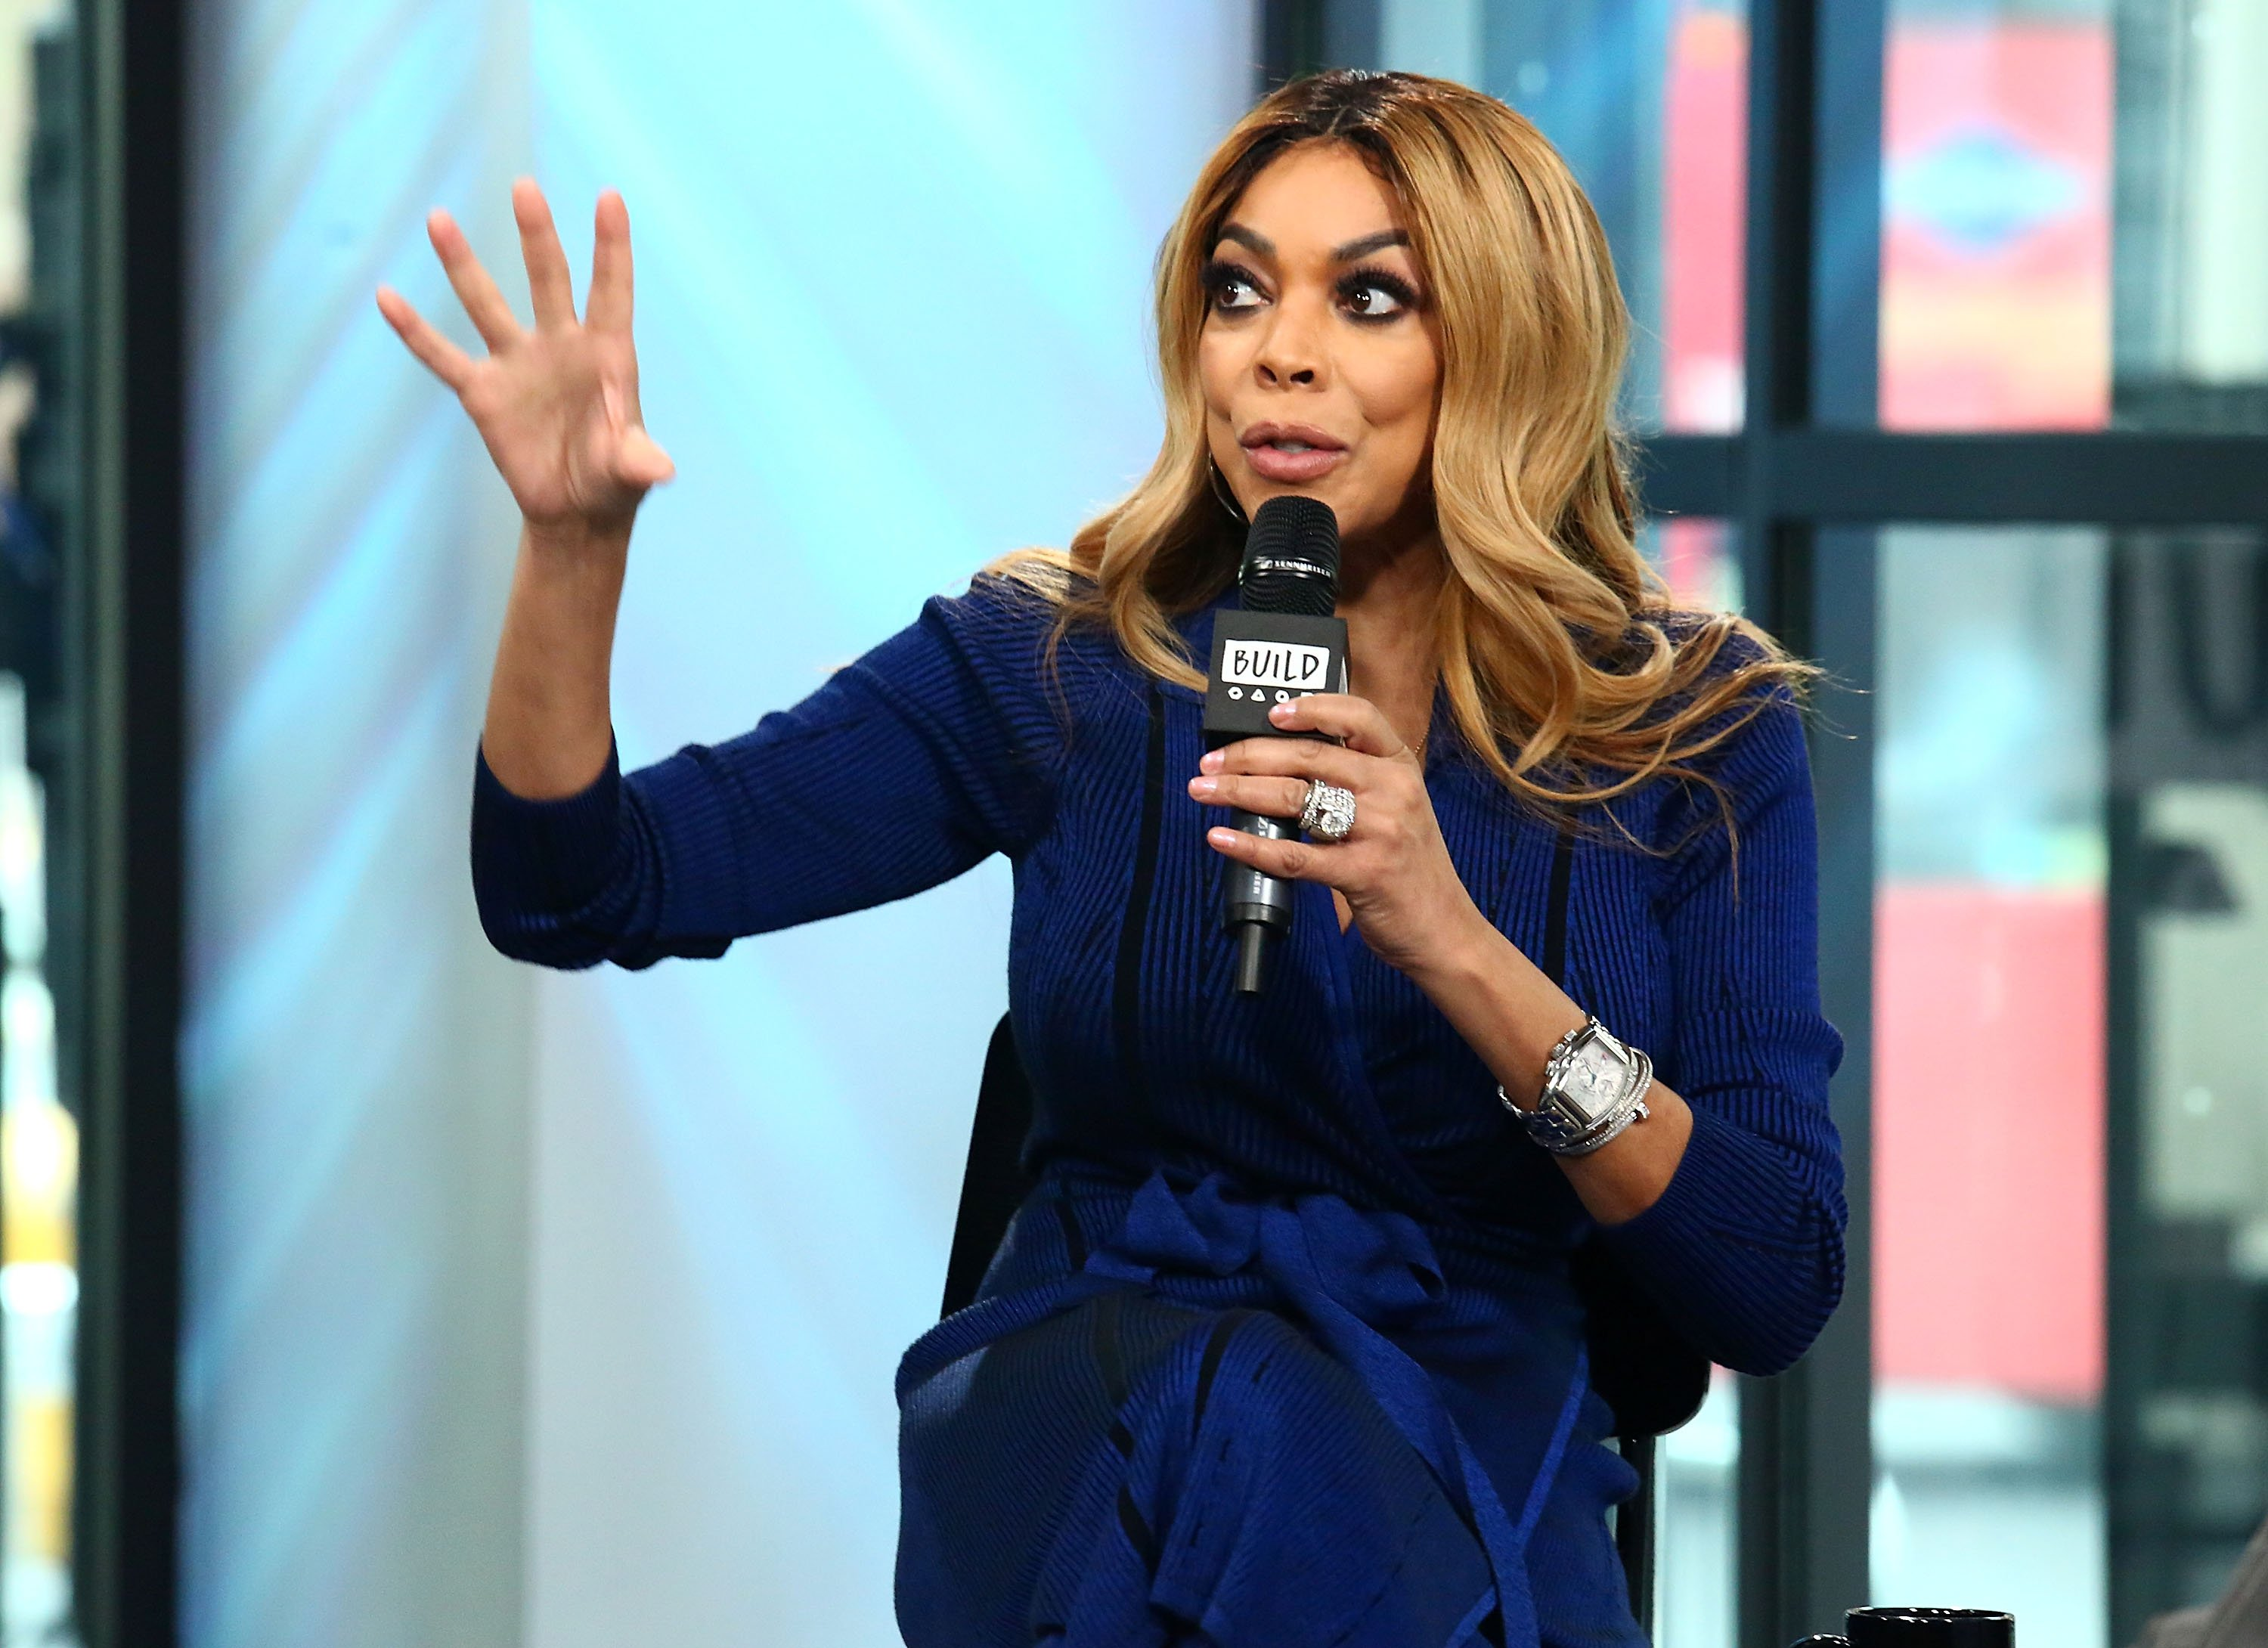 TV personality Wendy Williams discusses her daytime talk show at Build Studio on April 17, 2017 | Photo: Getty Images